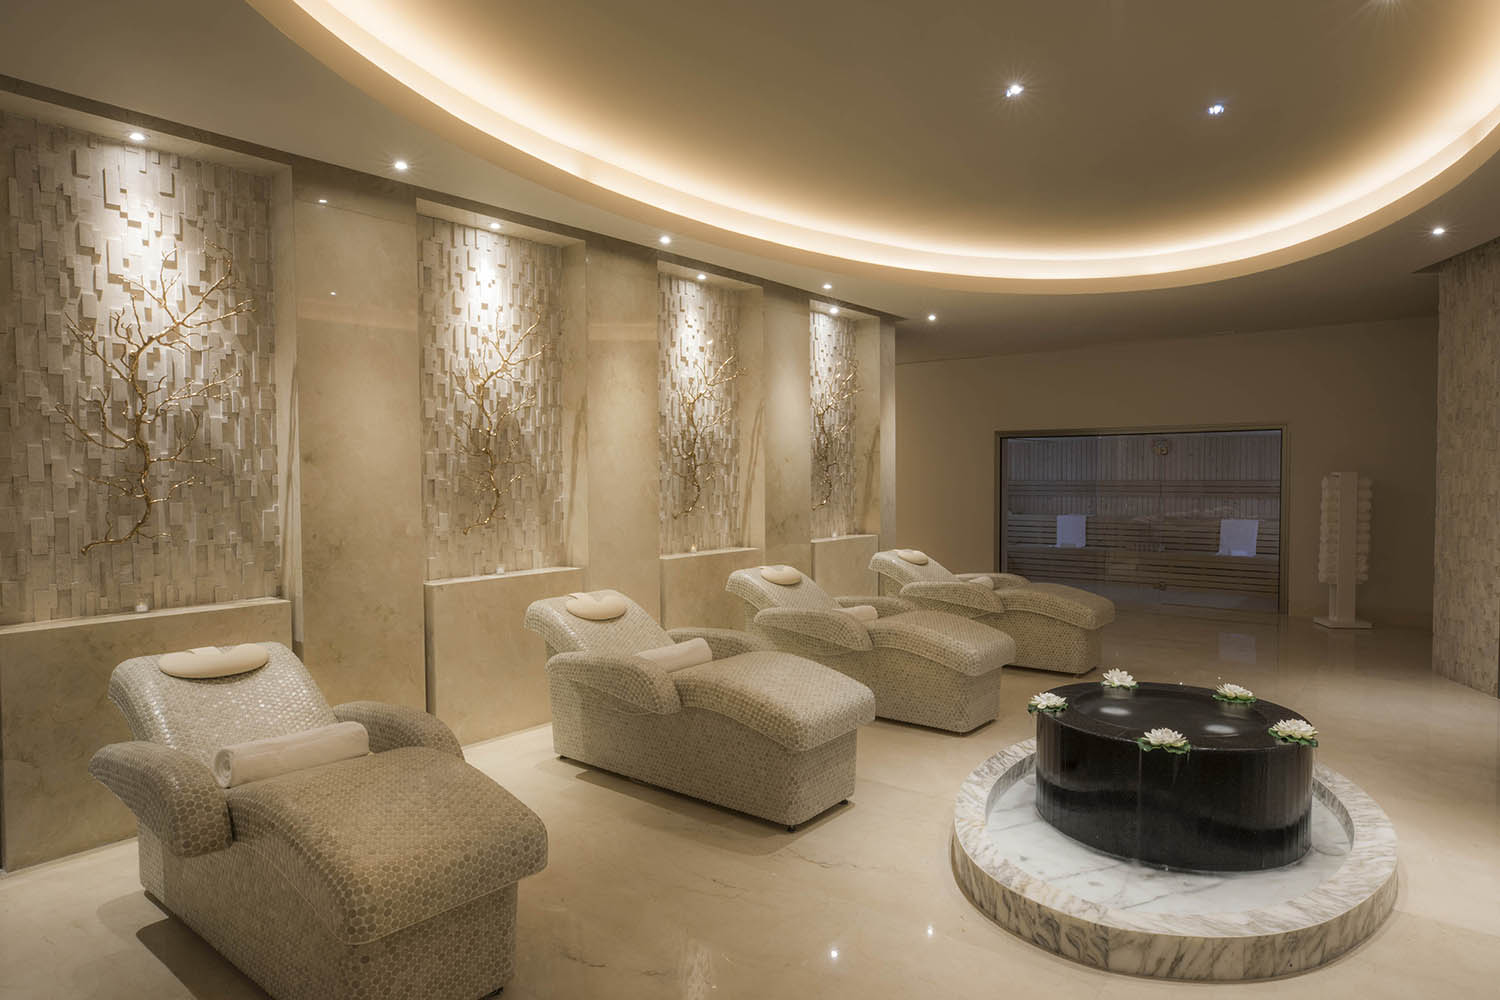 Heated seats in the spa area resized.jpg